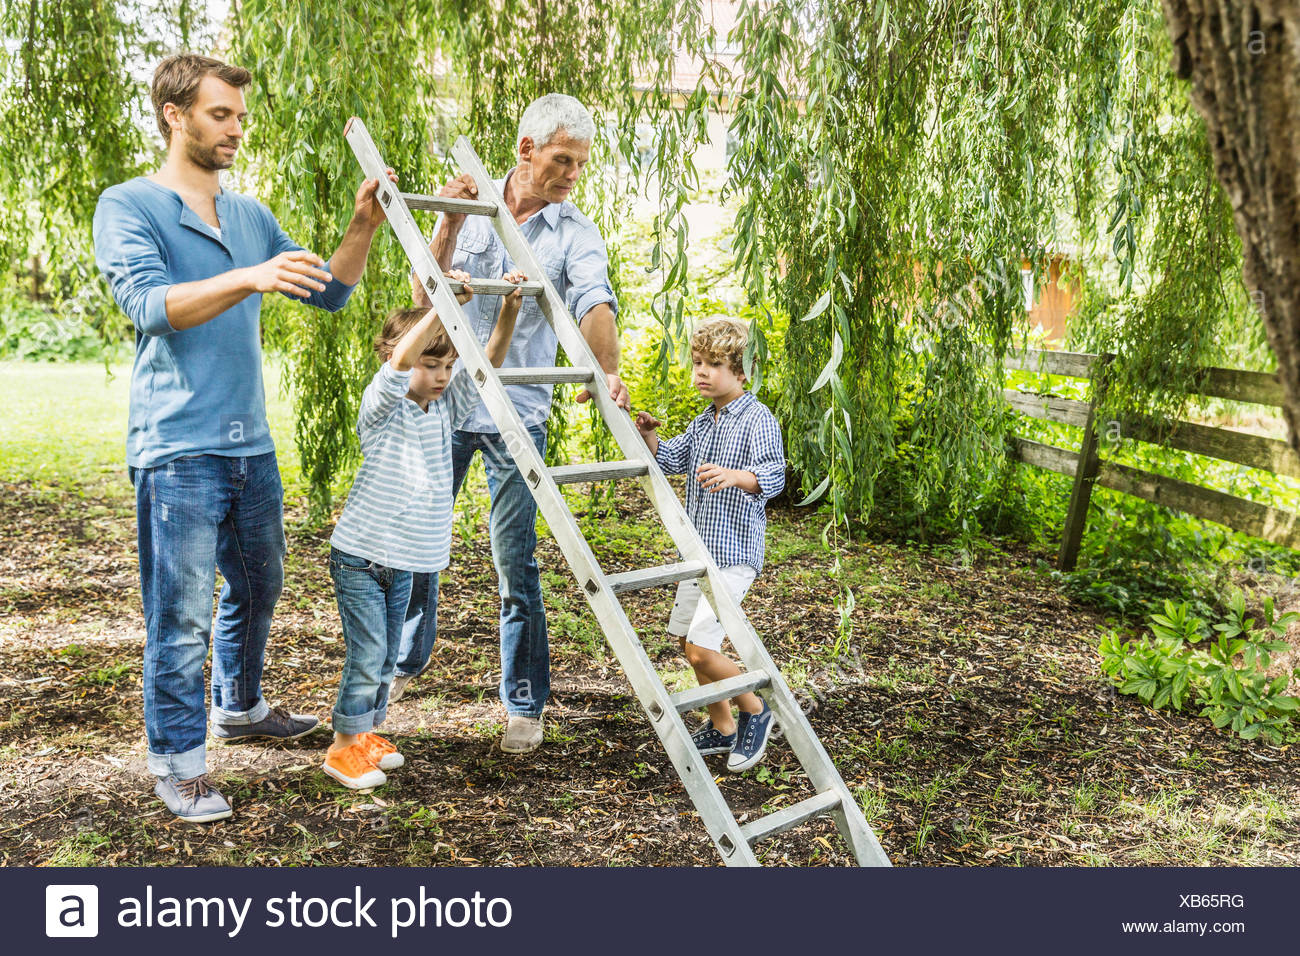 Mature man with son lifting ladder with grandsons in garden - Stock Image